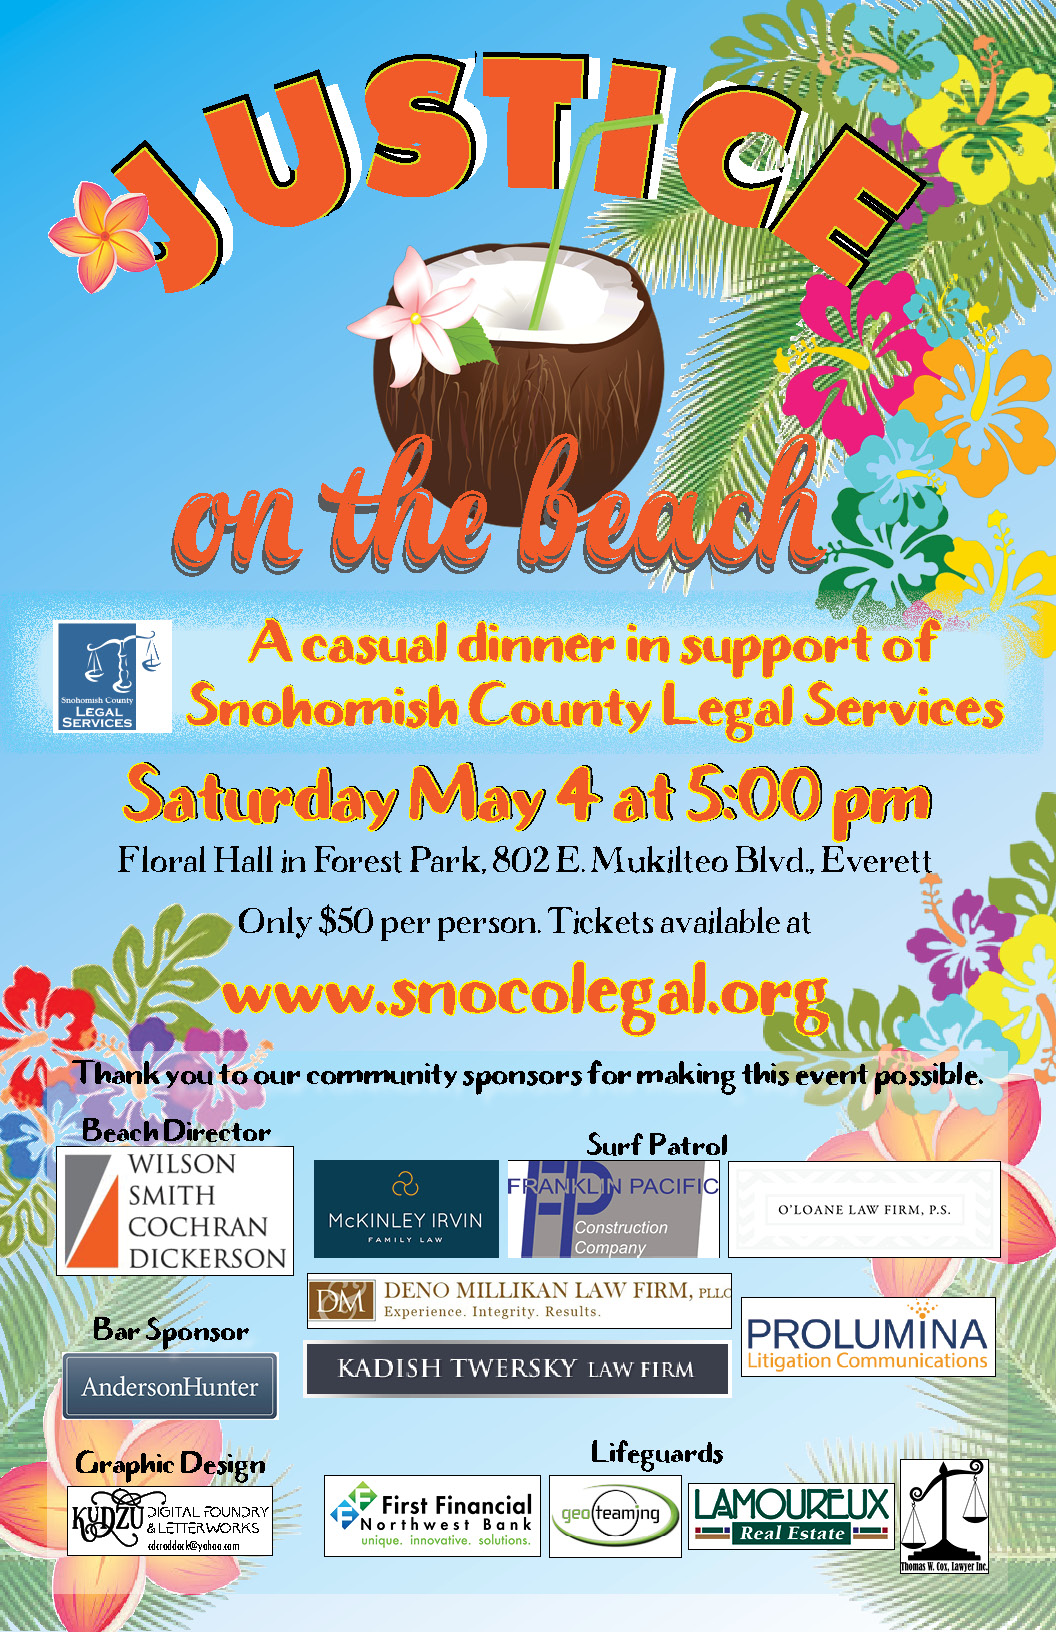 Justice On The Beach 2019 Snohomish County Legal Services